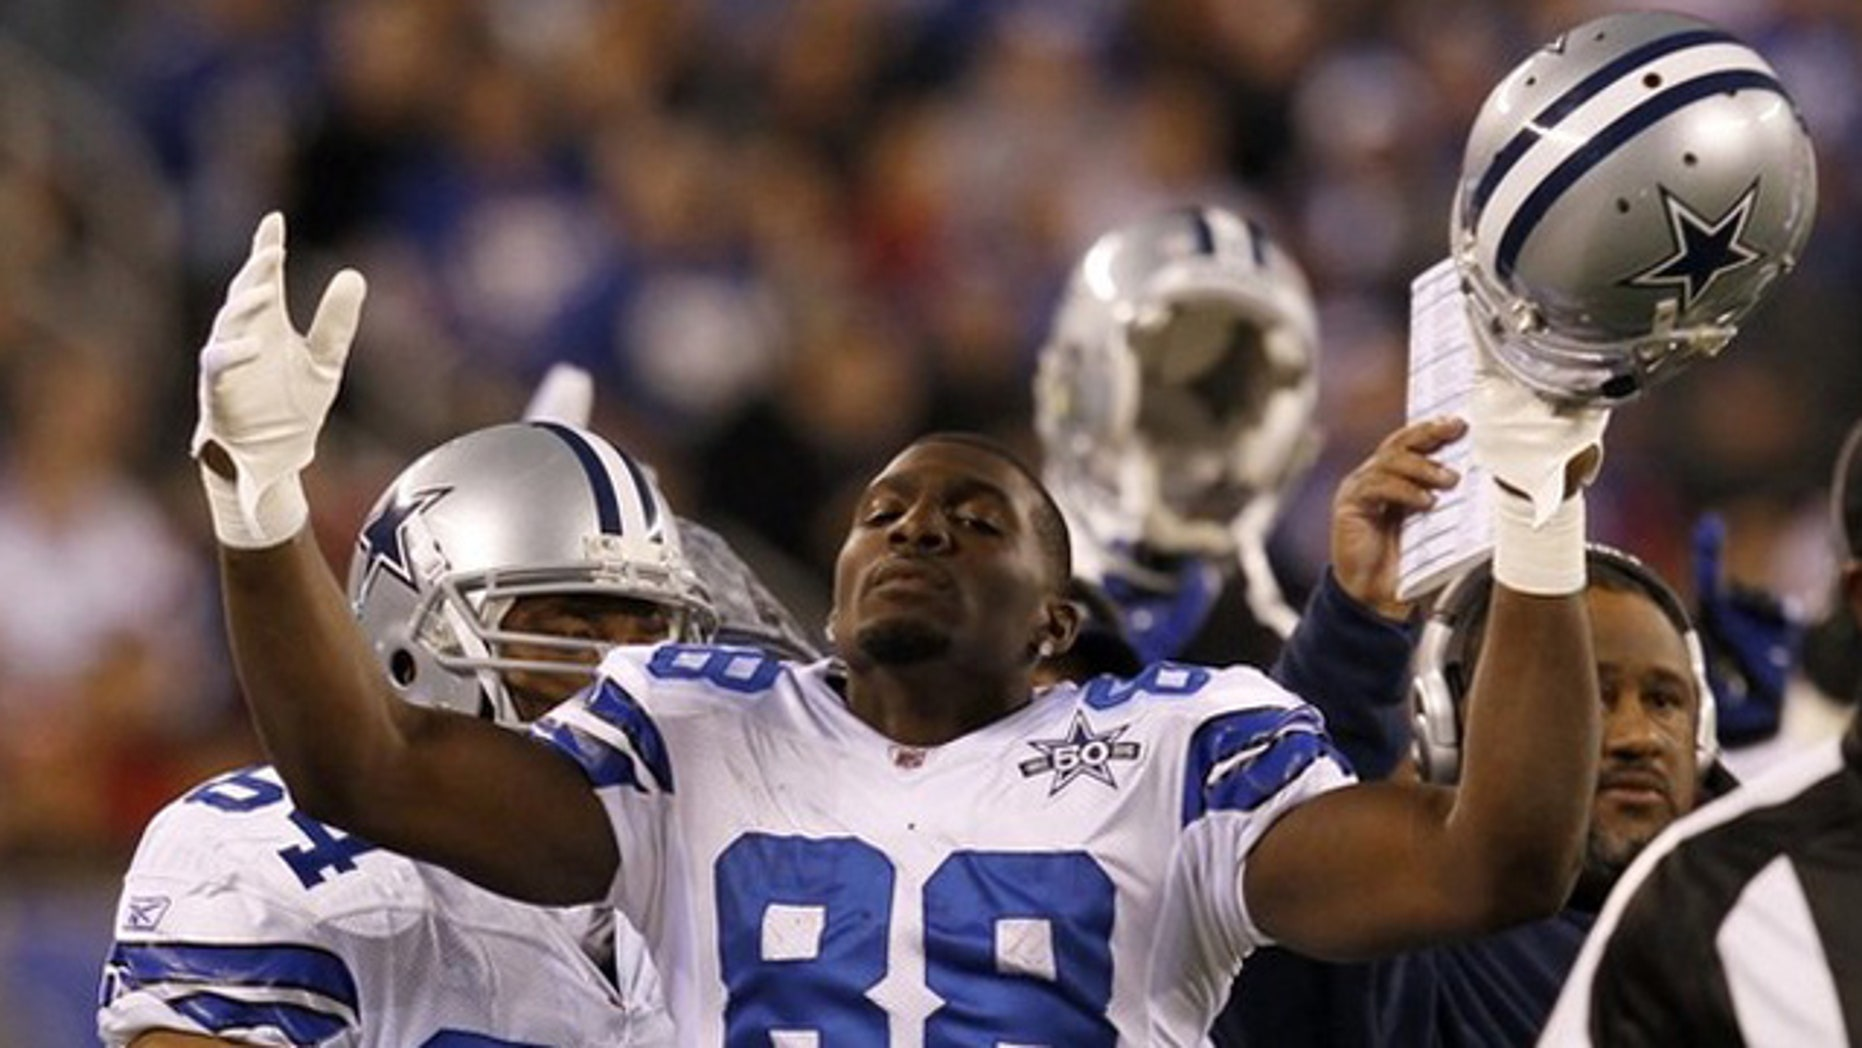 Nov. 14, 2010: Dallas Cowboys wide receiver Dez Bryan (88) celebrates after his catch was ruled a touchdown on replay during the first quarter of their NFL football game against the New York Giants in East Rutherford, New Jersey.